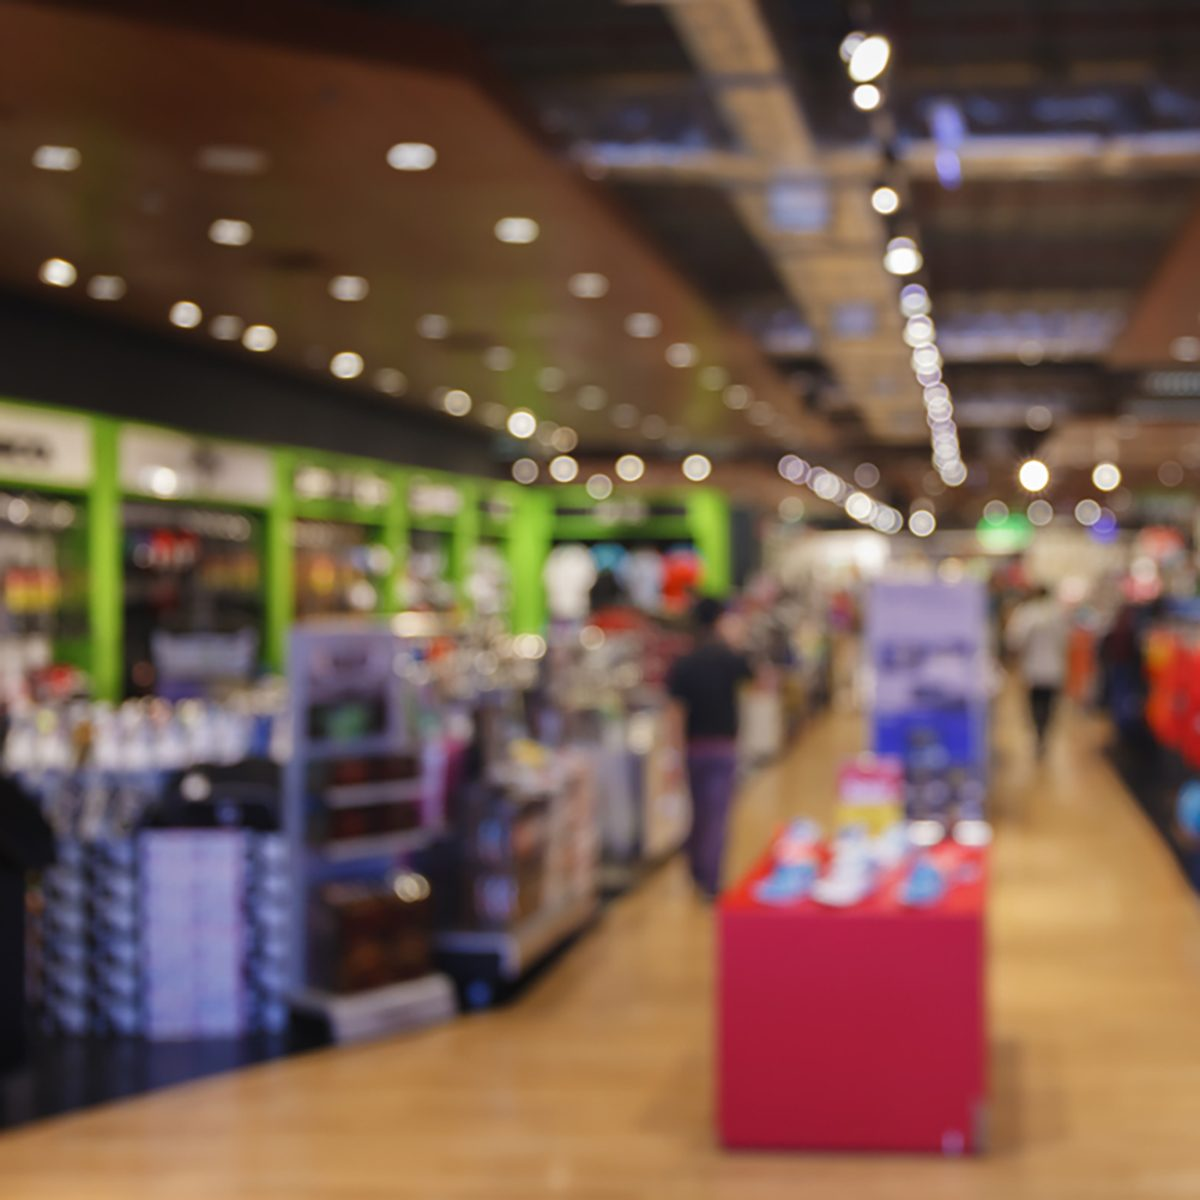 Blurred background of sport department store